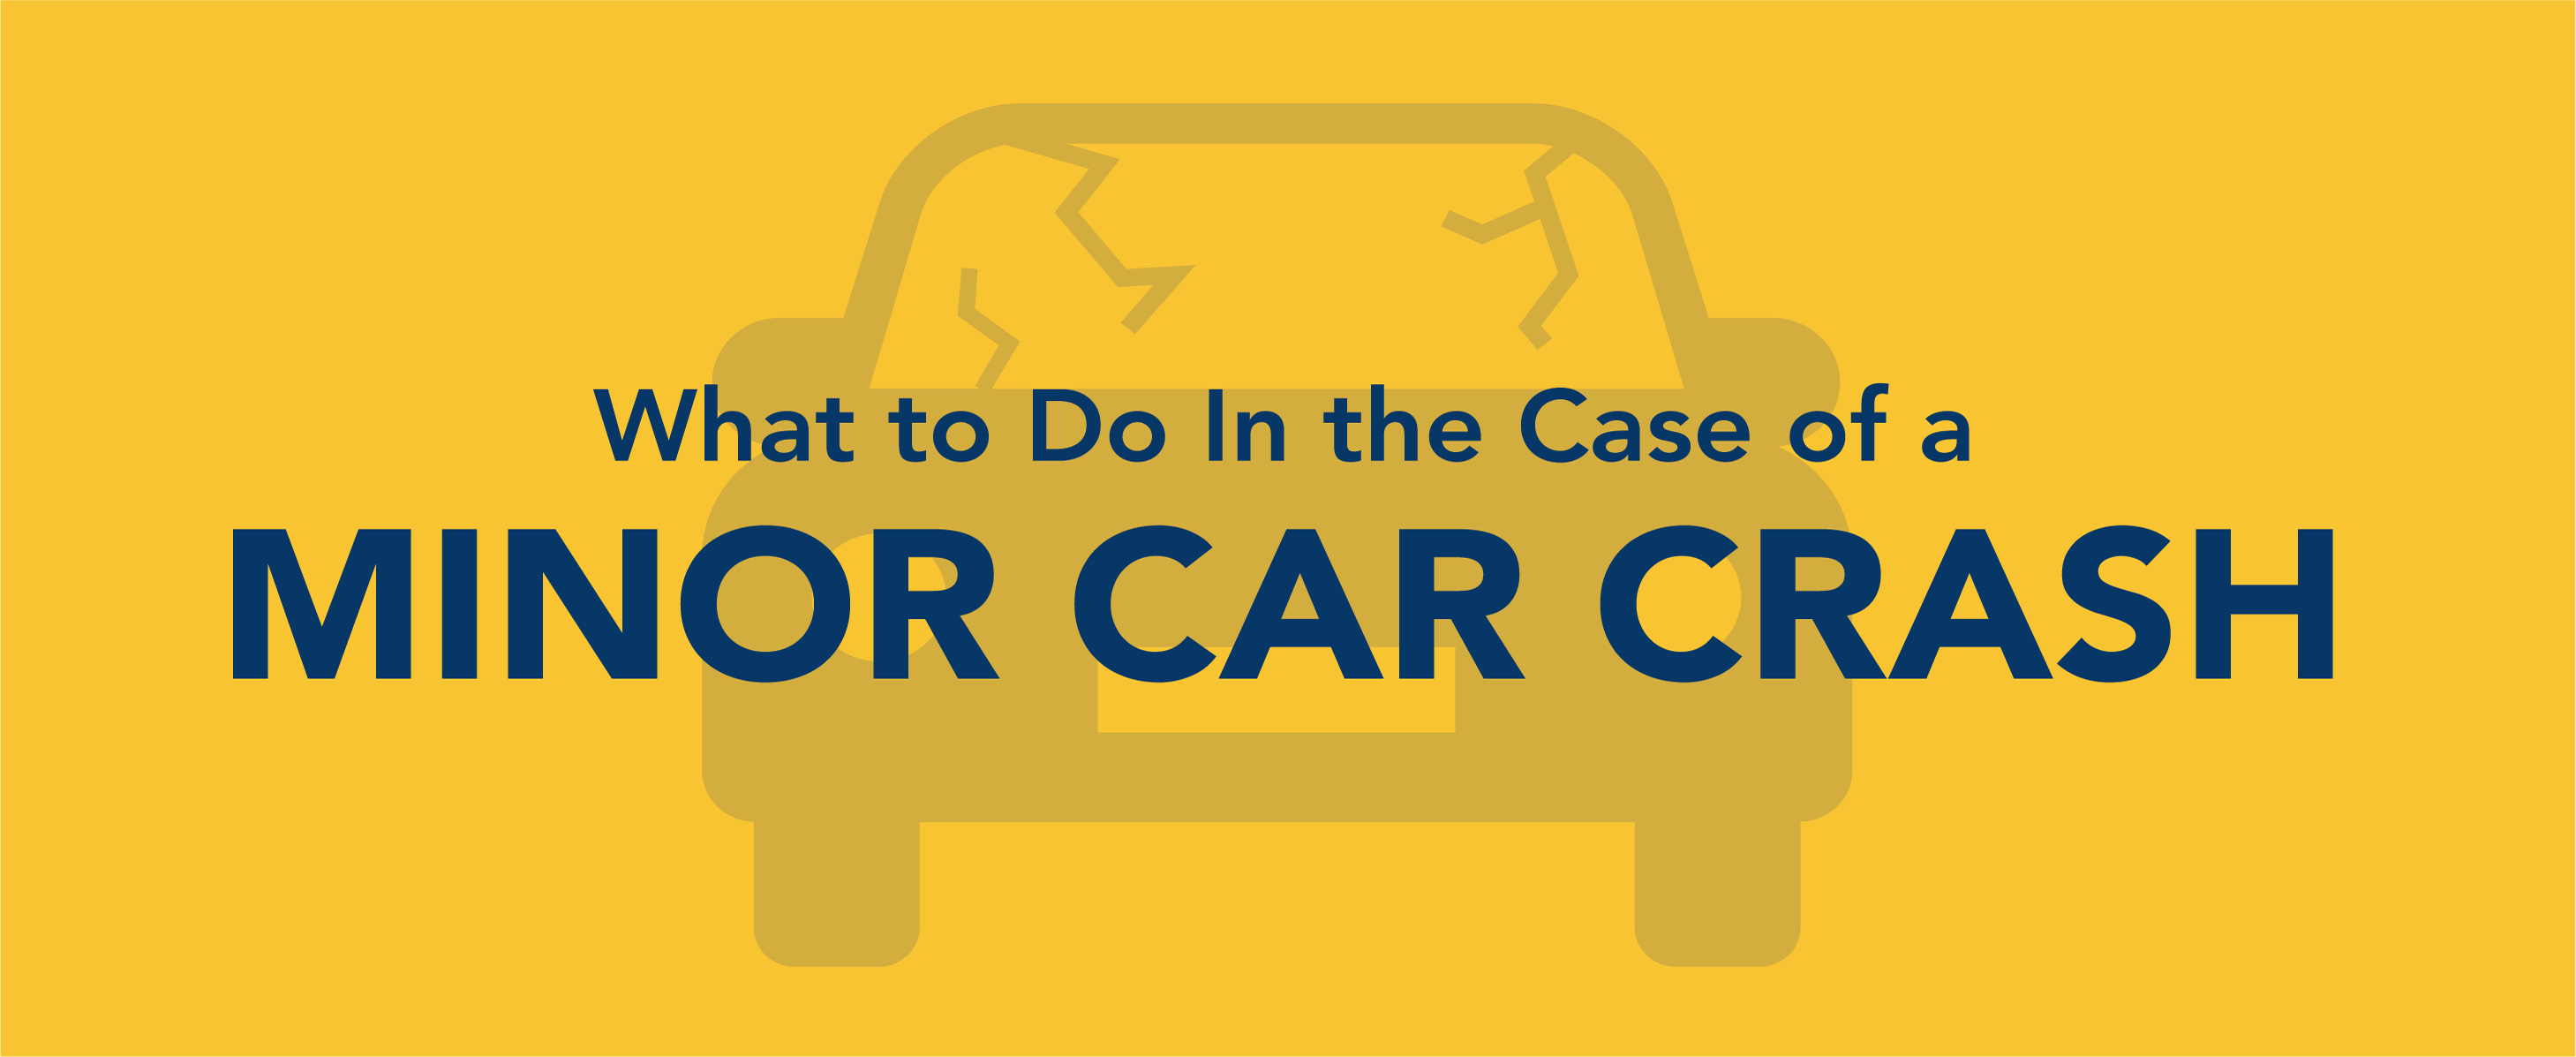 What to do in the case of a minor car crash.